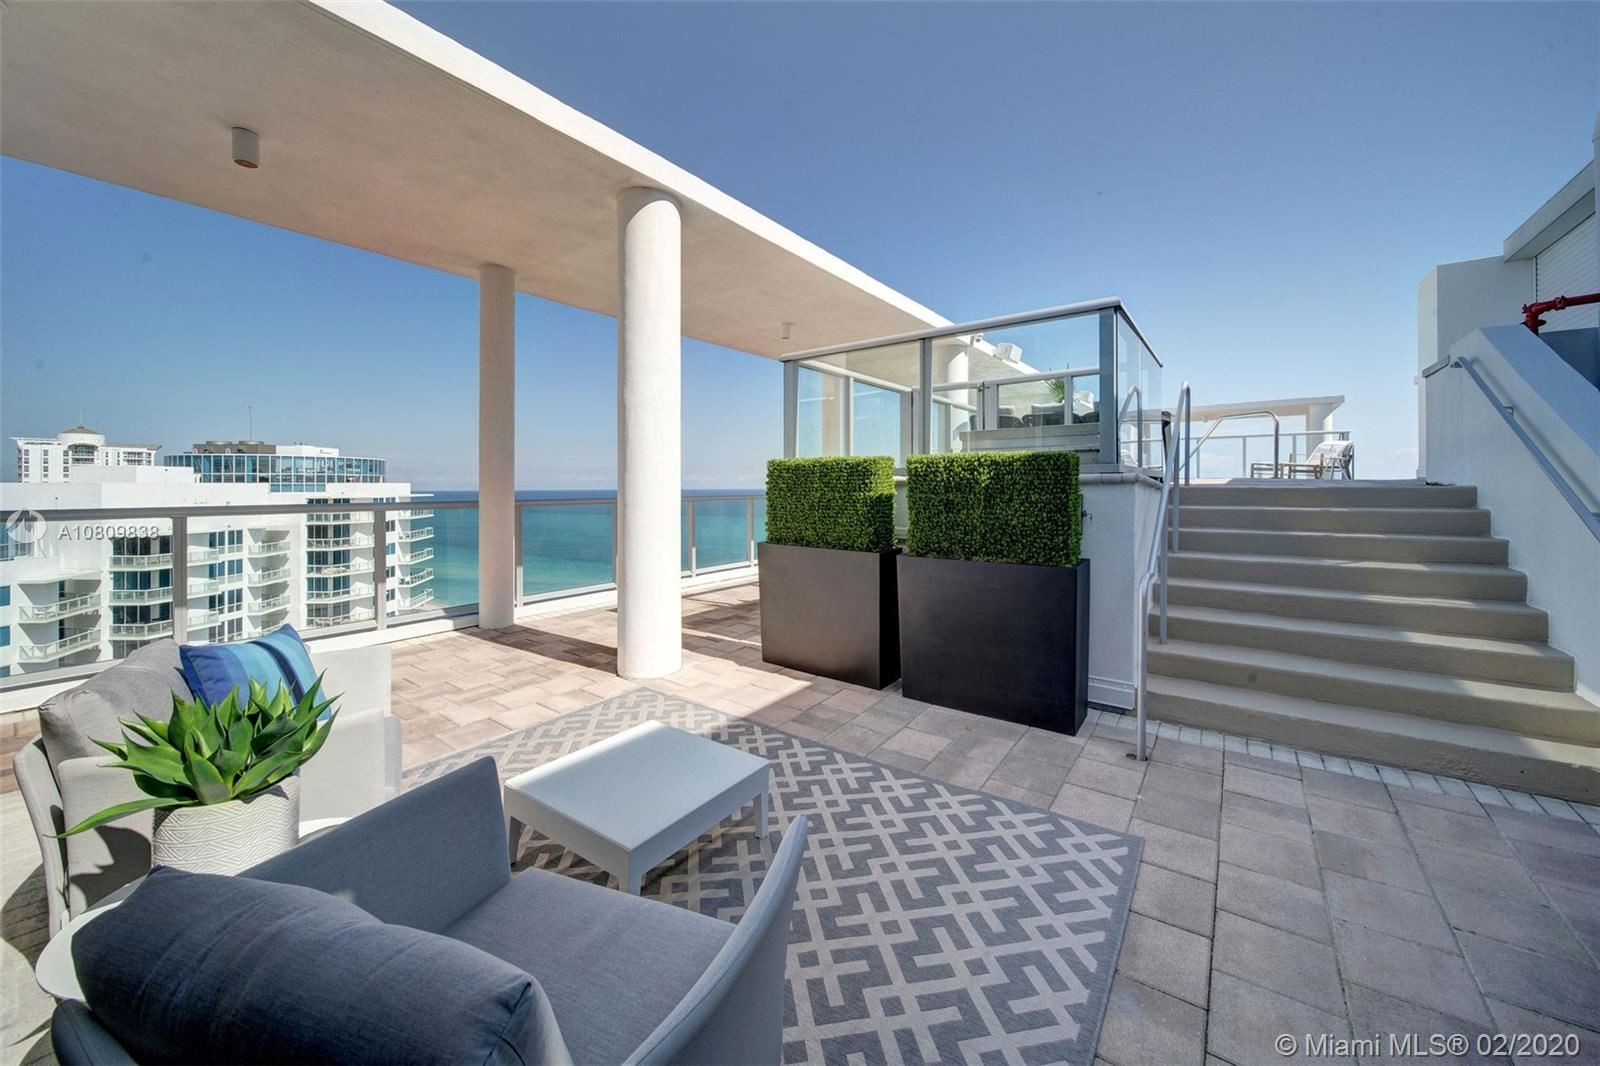 Photo 4 of Listing MLS a10809838 in 3737 Collins Ave #PH-4 Miami Beach FL 33140